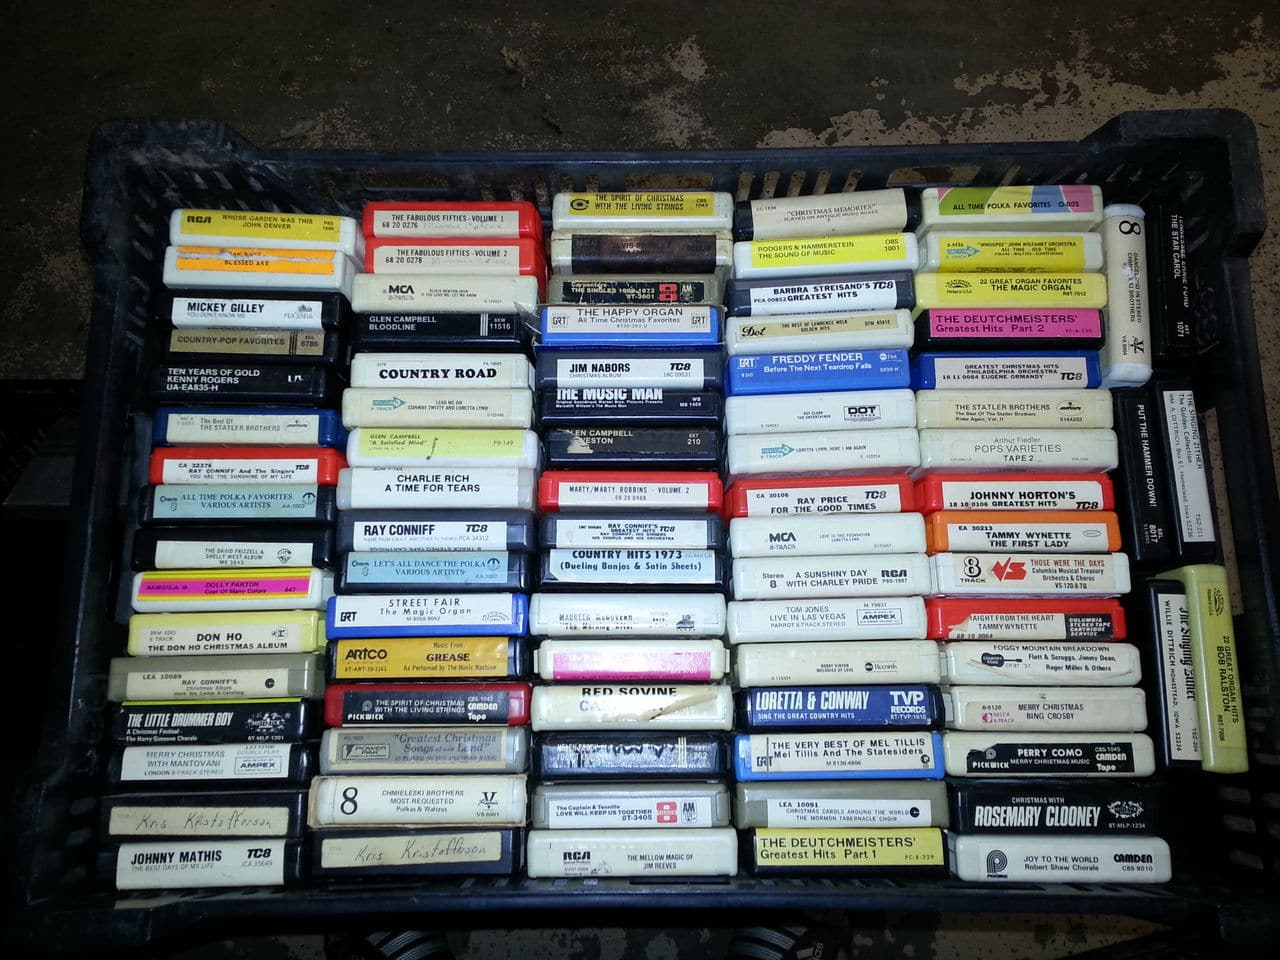 8 track tape player 20151011_185744